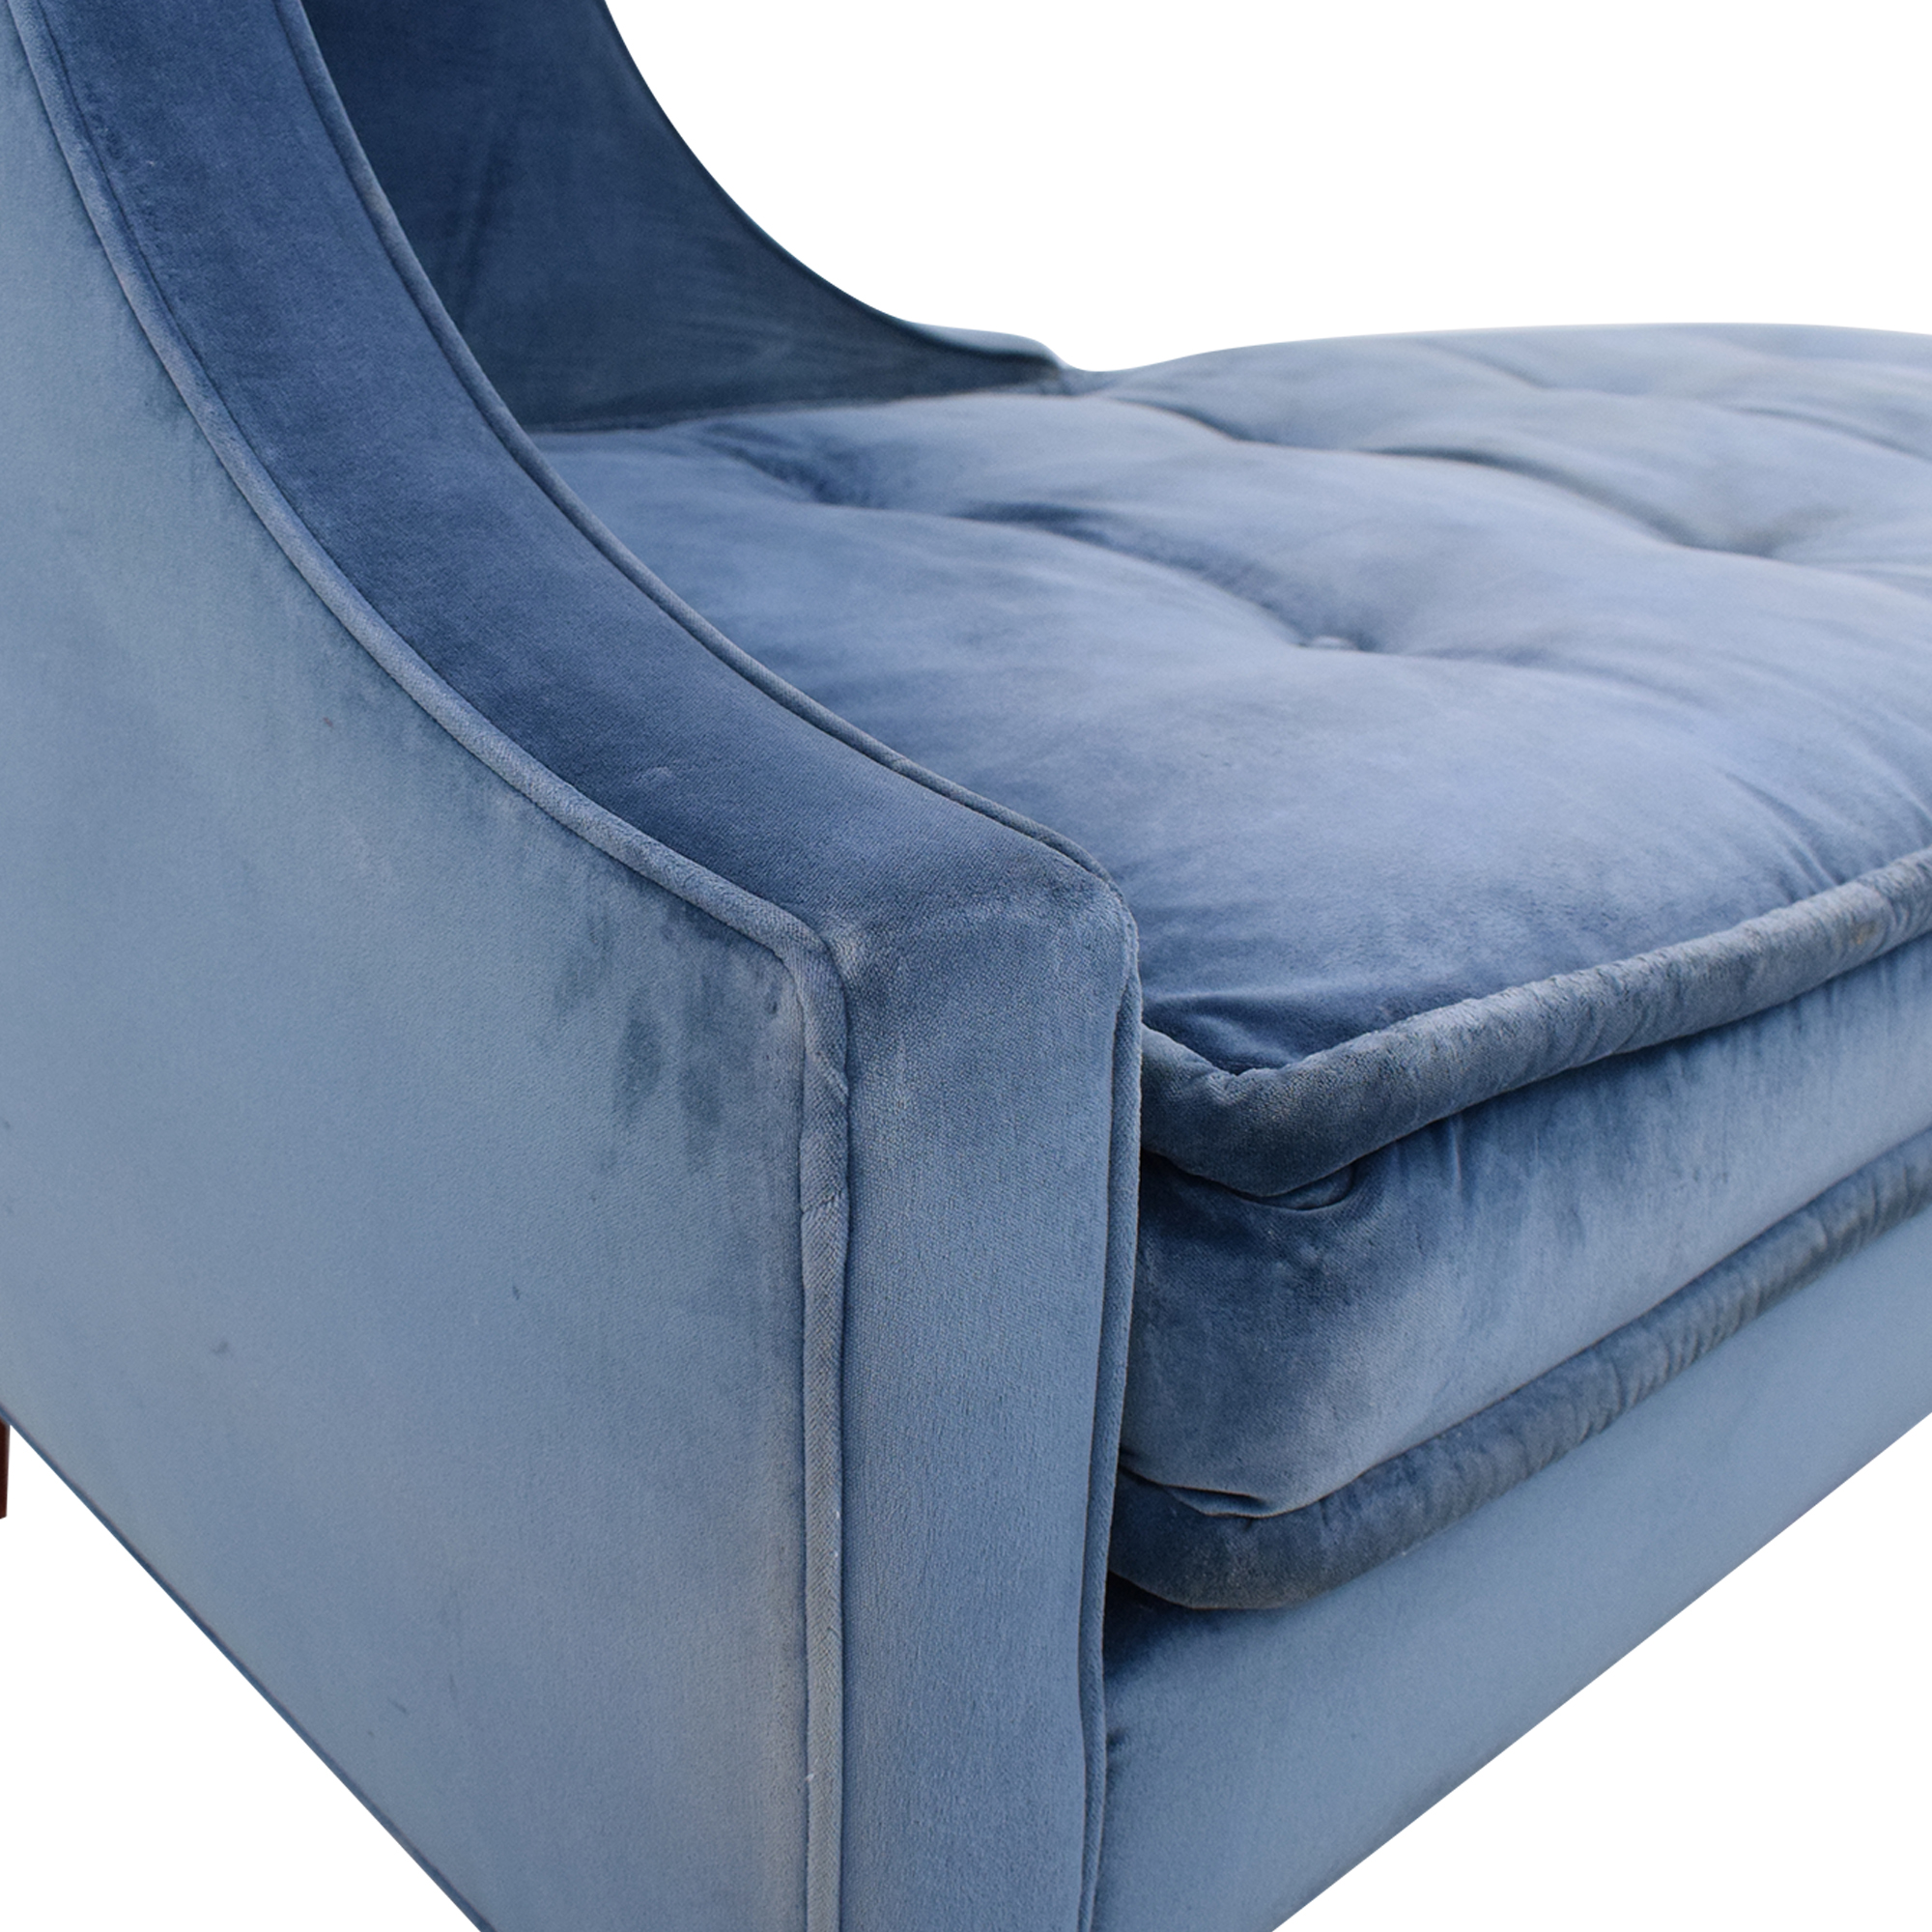 Charles Stewart Company Charles Stewart Company Tufted Chaise ct